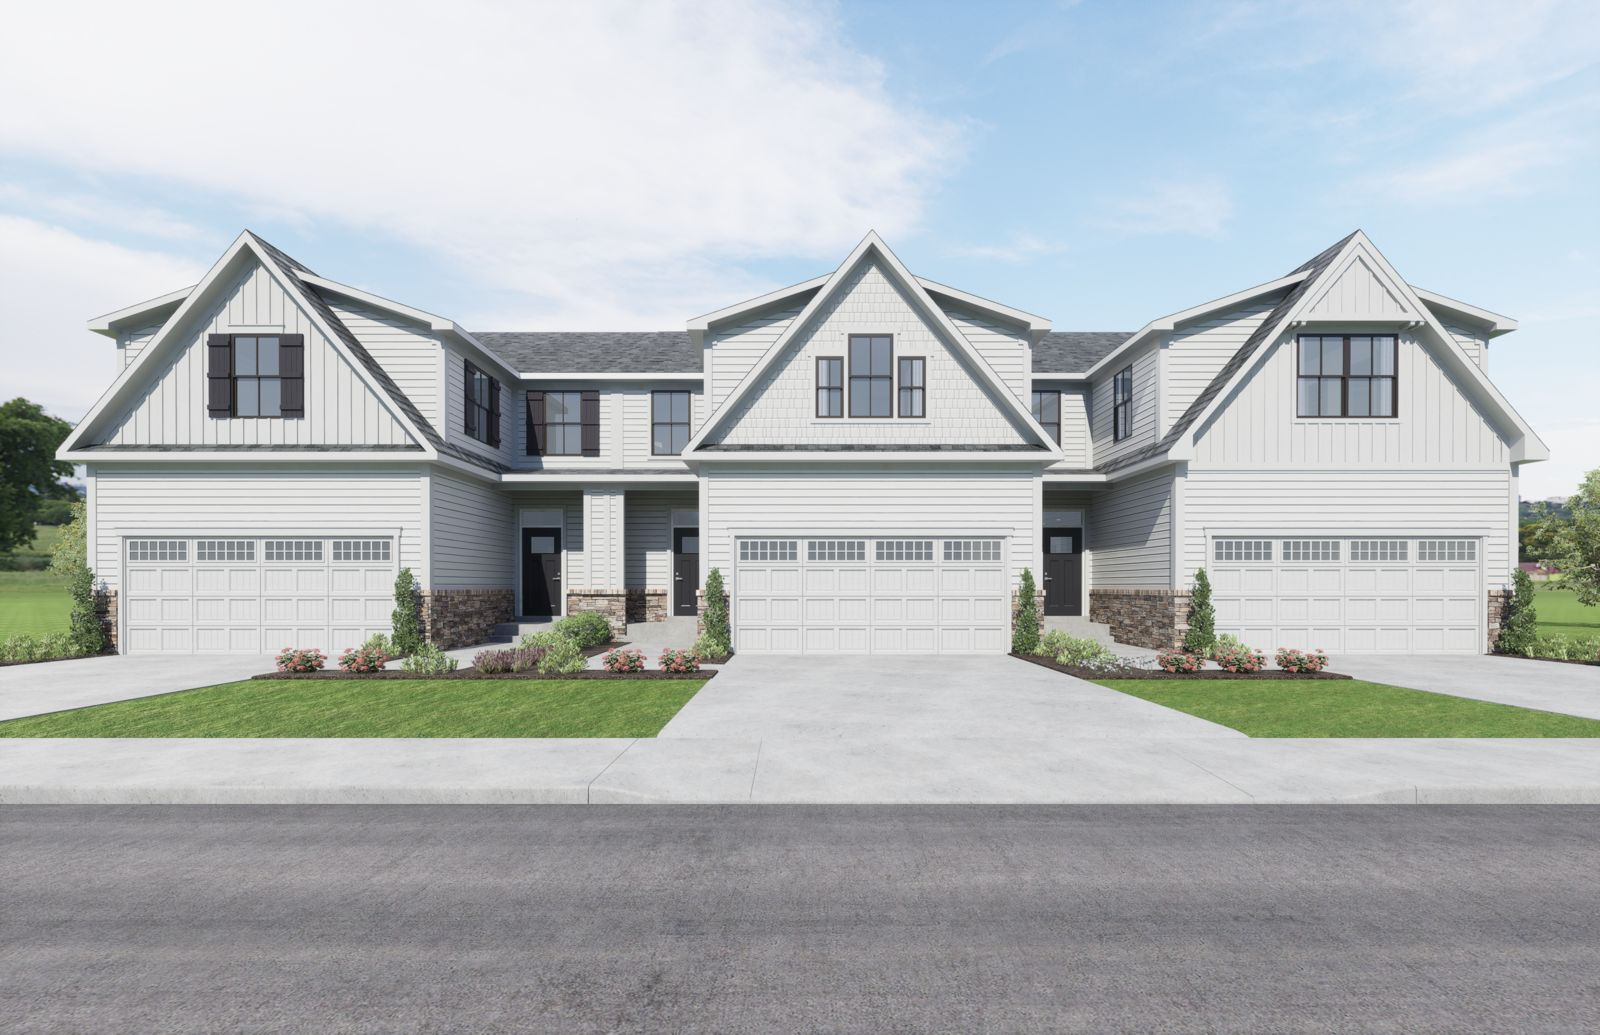 SMALL ENCLAVE OF 48 MODERN TOWNHOMES FROM MID $300's:Own a new modern farmhouse style townhome with 1st-floor owner suite and homesites that back to trees or open space—Schedule a visit to learn more!